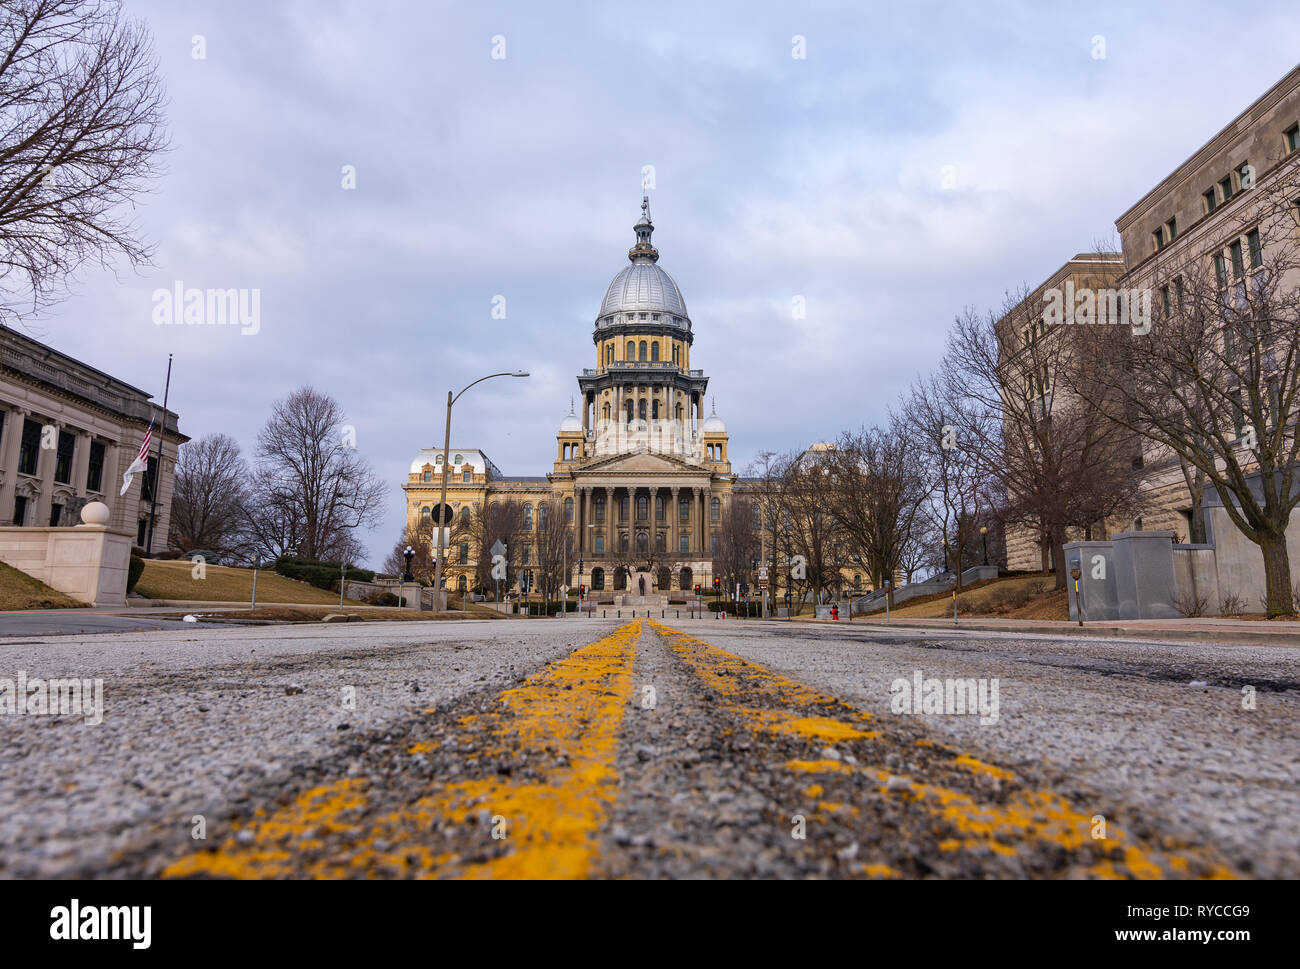 Rough road leading to the Illinois State Capitol Building.  Springfield, Illinois, USA. - Stock Image